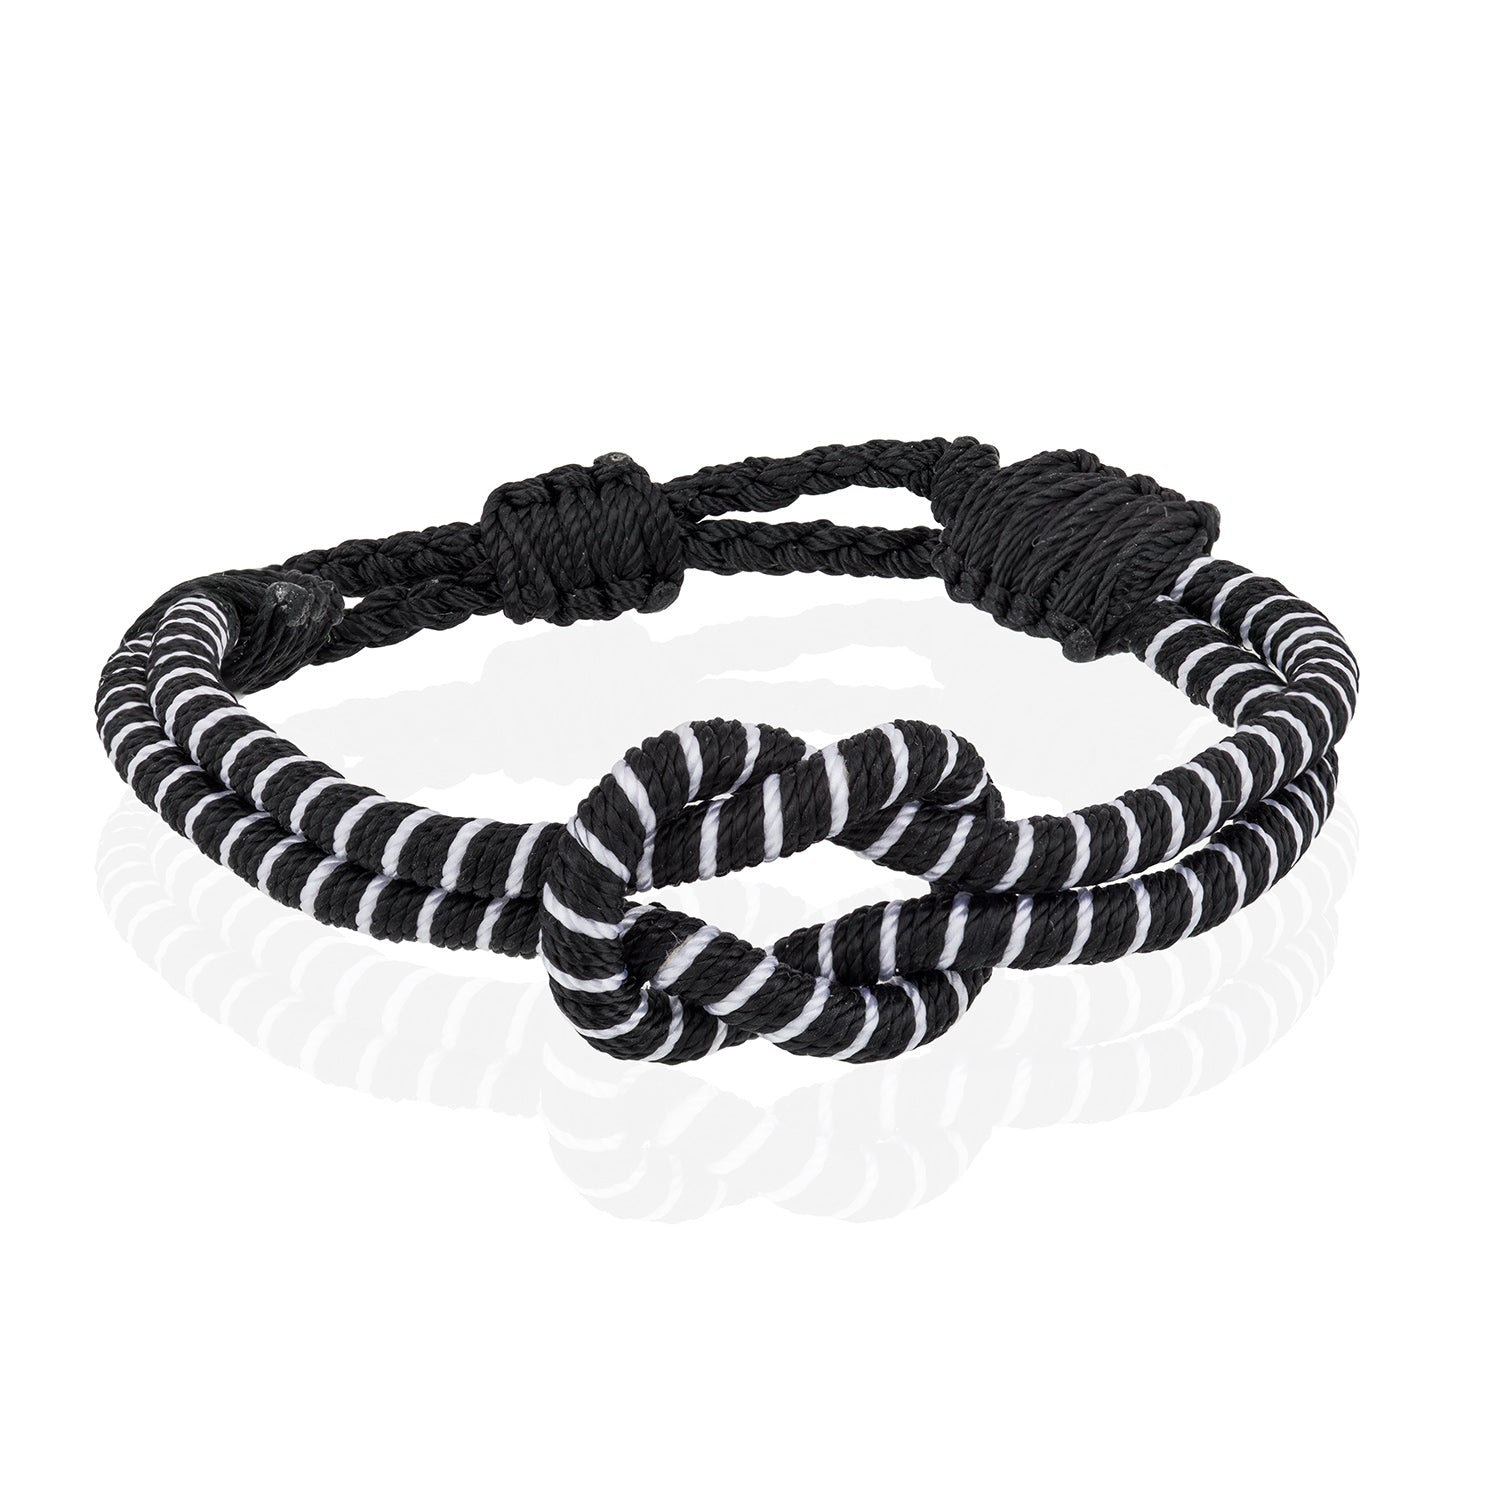 Open Knot Bracelet - Two Strand Black & White